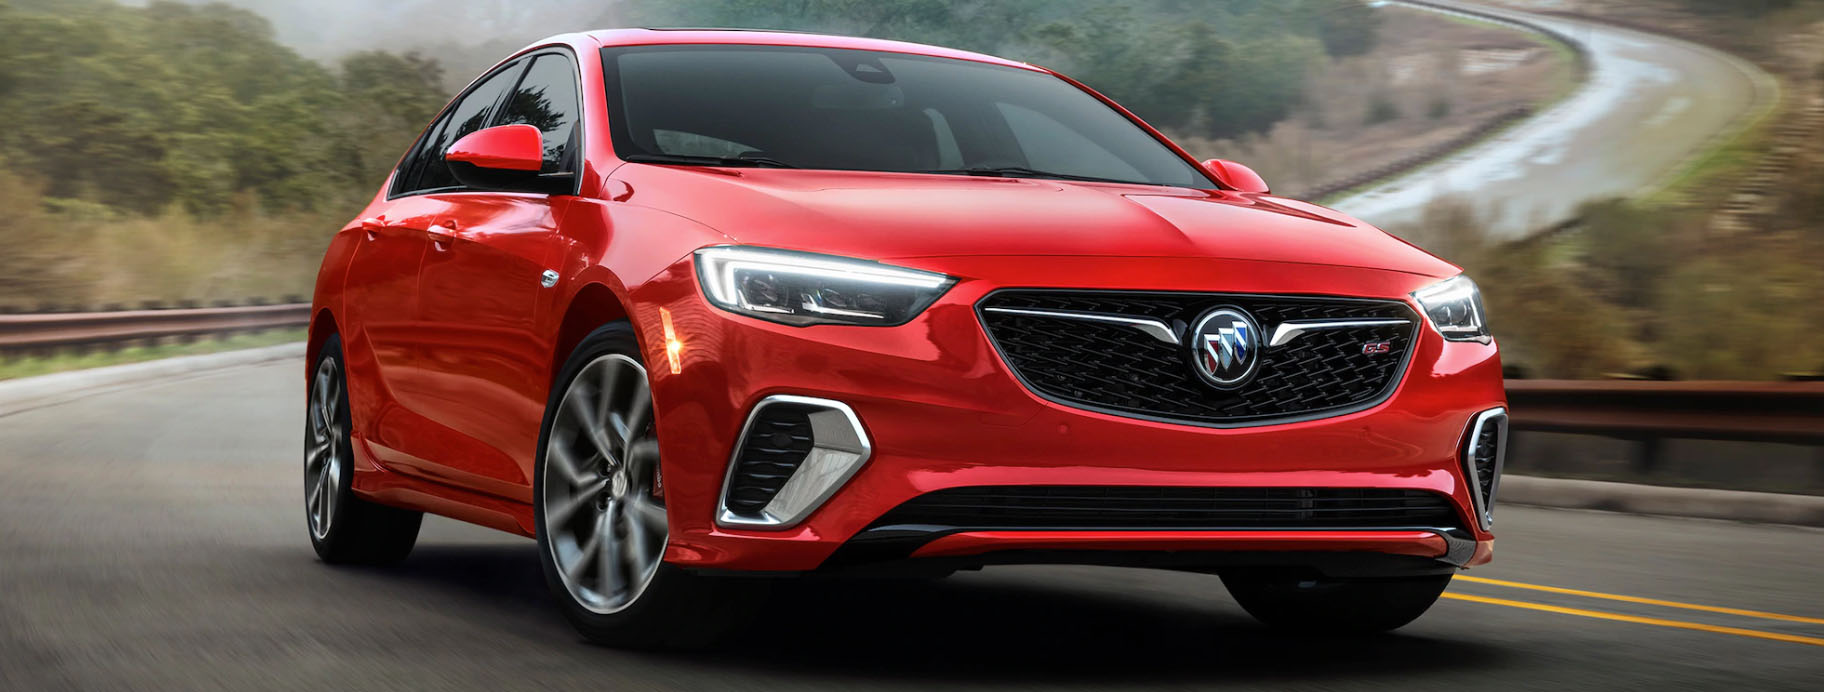 2020 Buick Regal Sportback Appearance Main Img